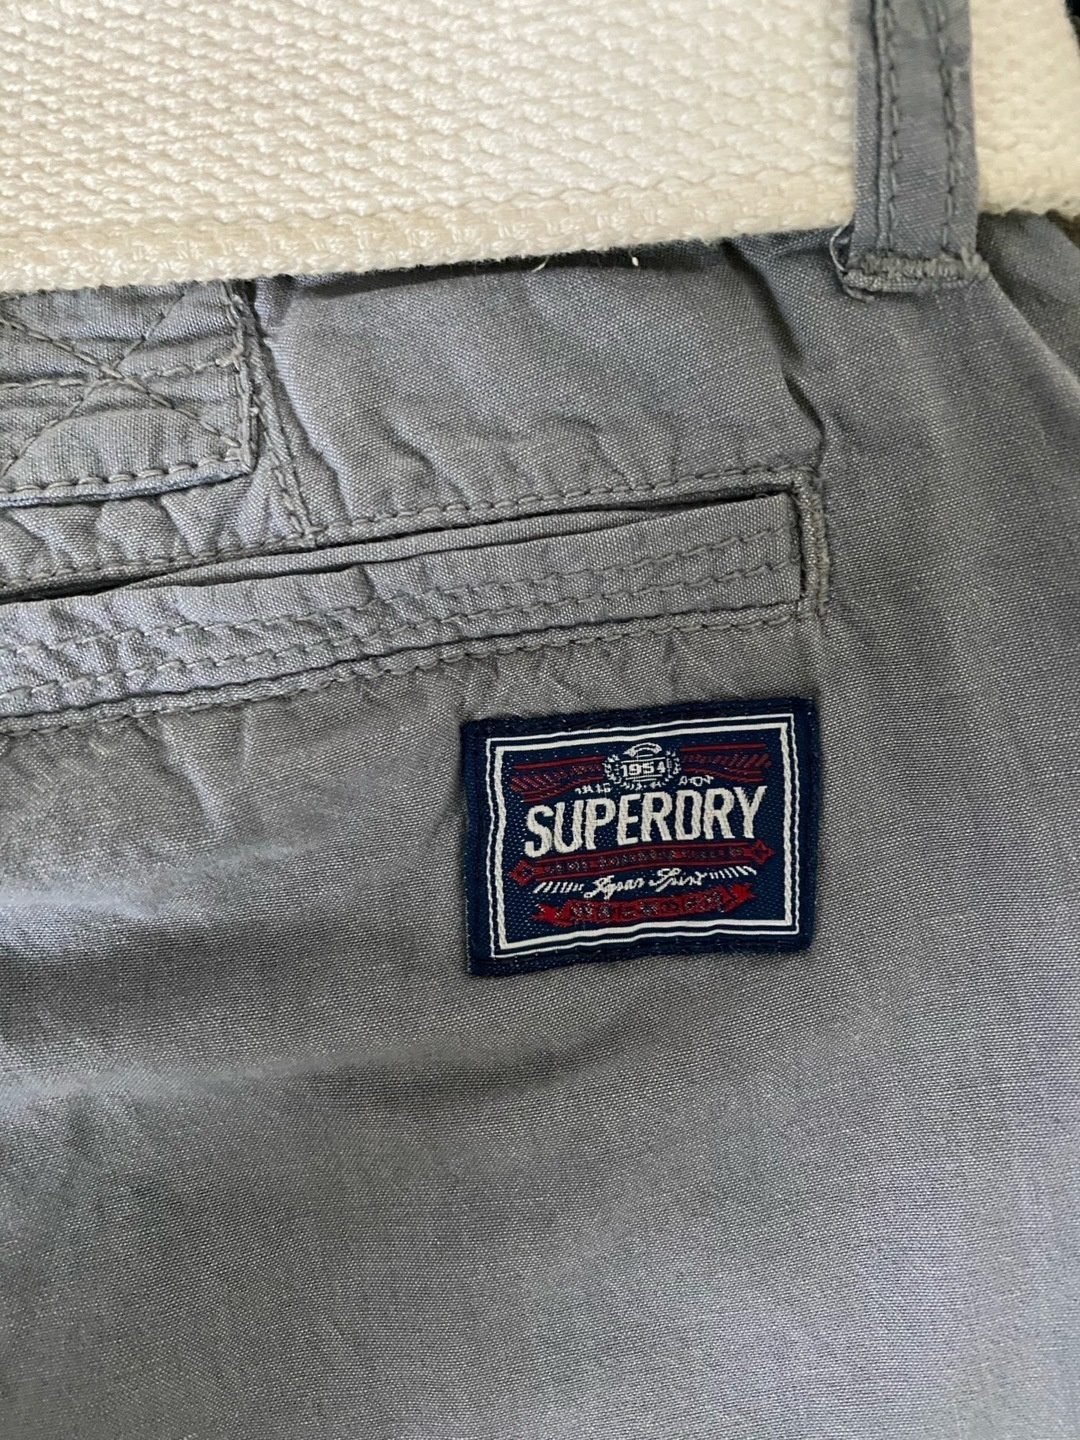 Damers shorts - SUPERDRY photo 3